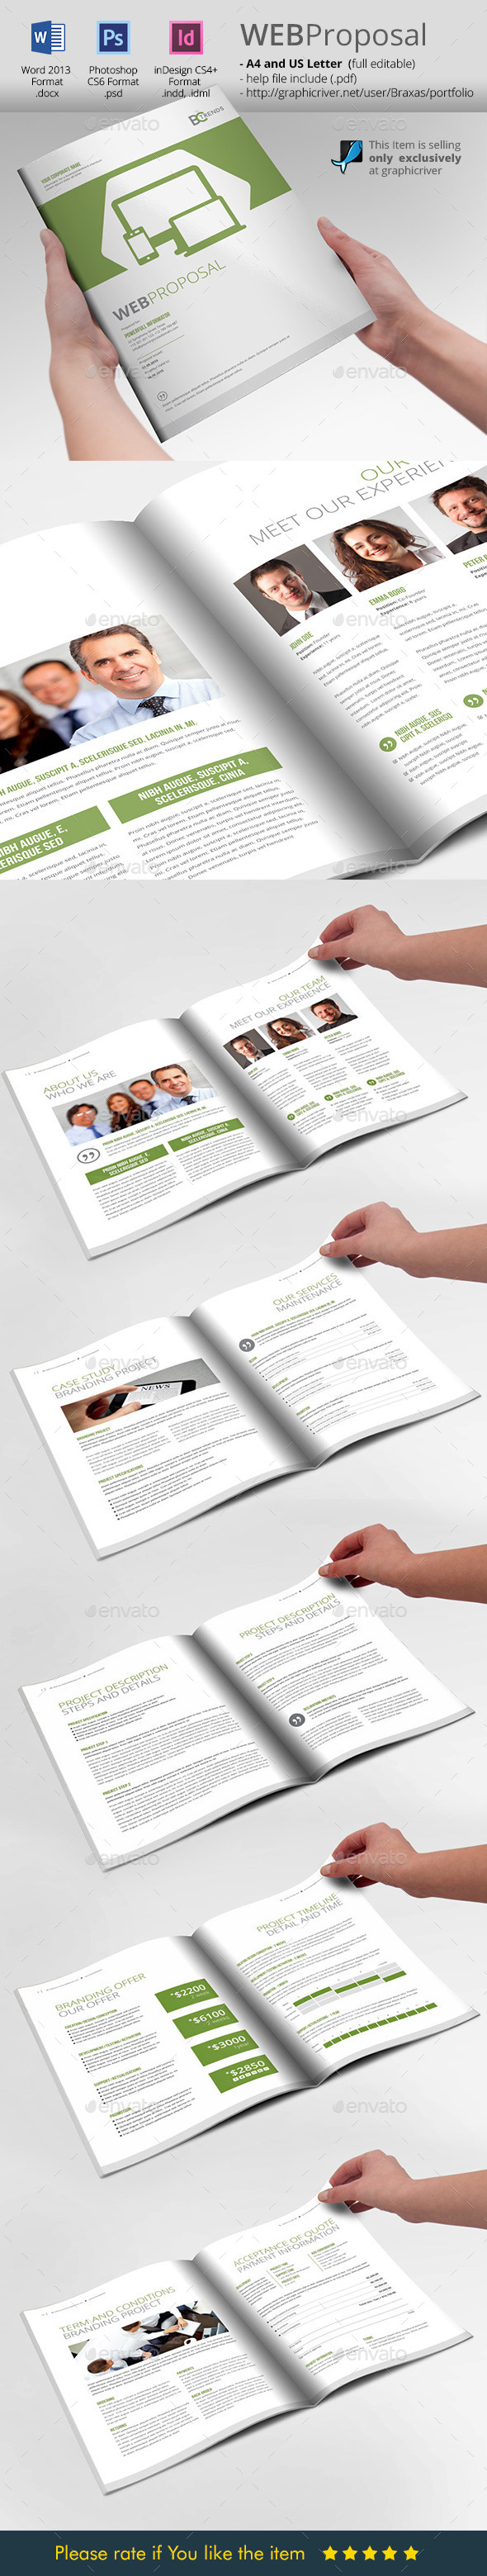 WEB Proposal Brochure Template - Proposals & Invoices Stationery